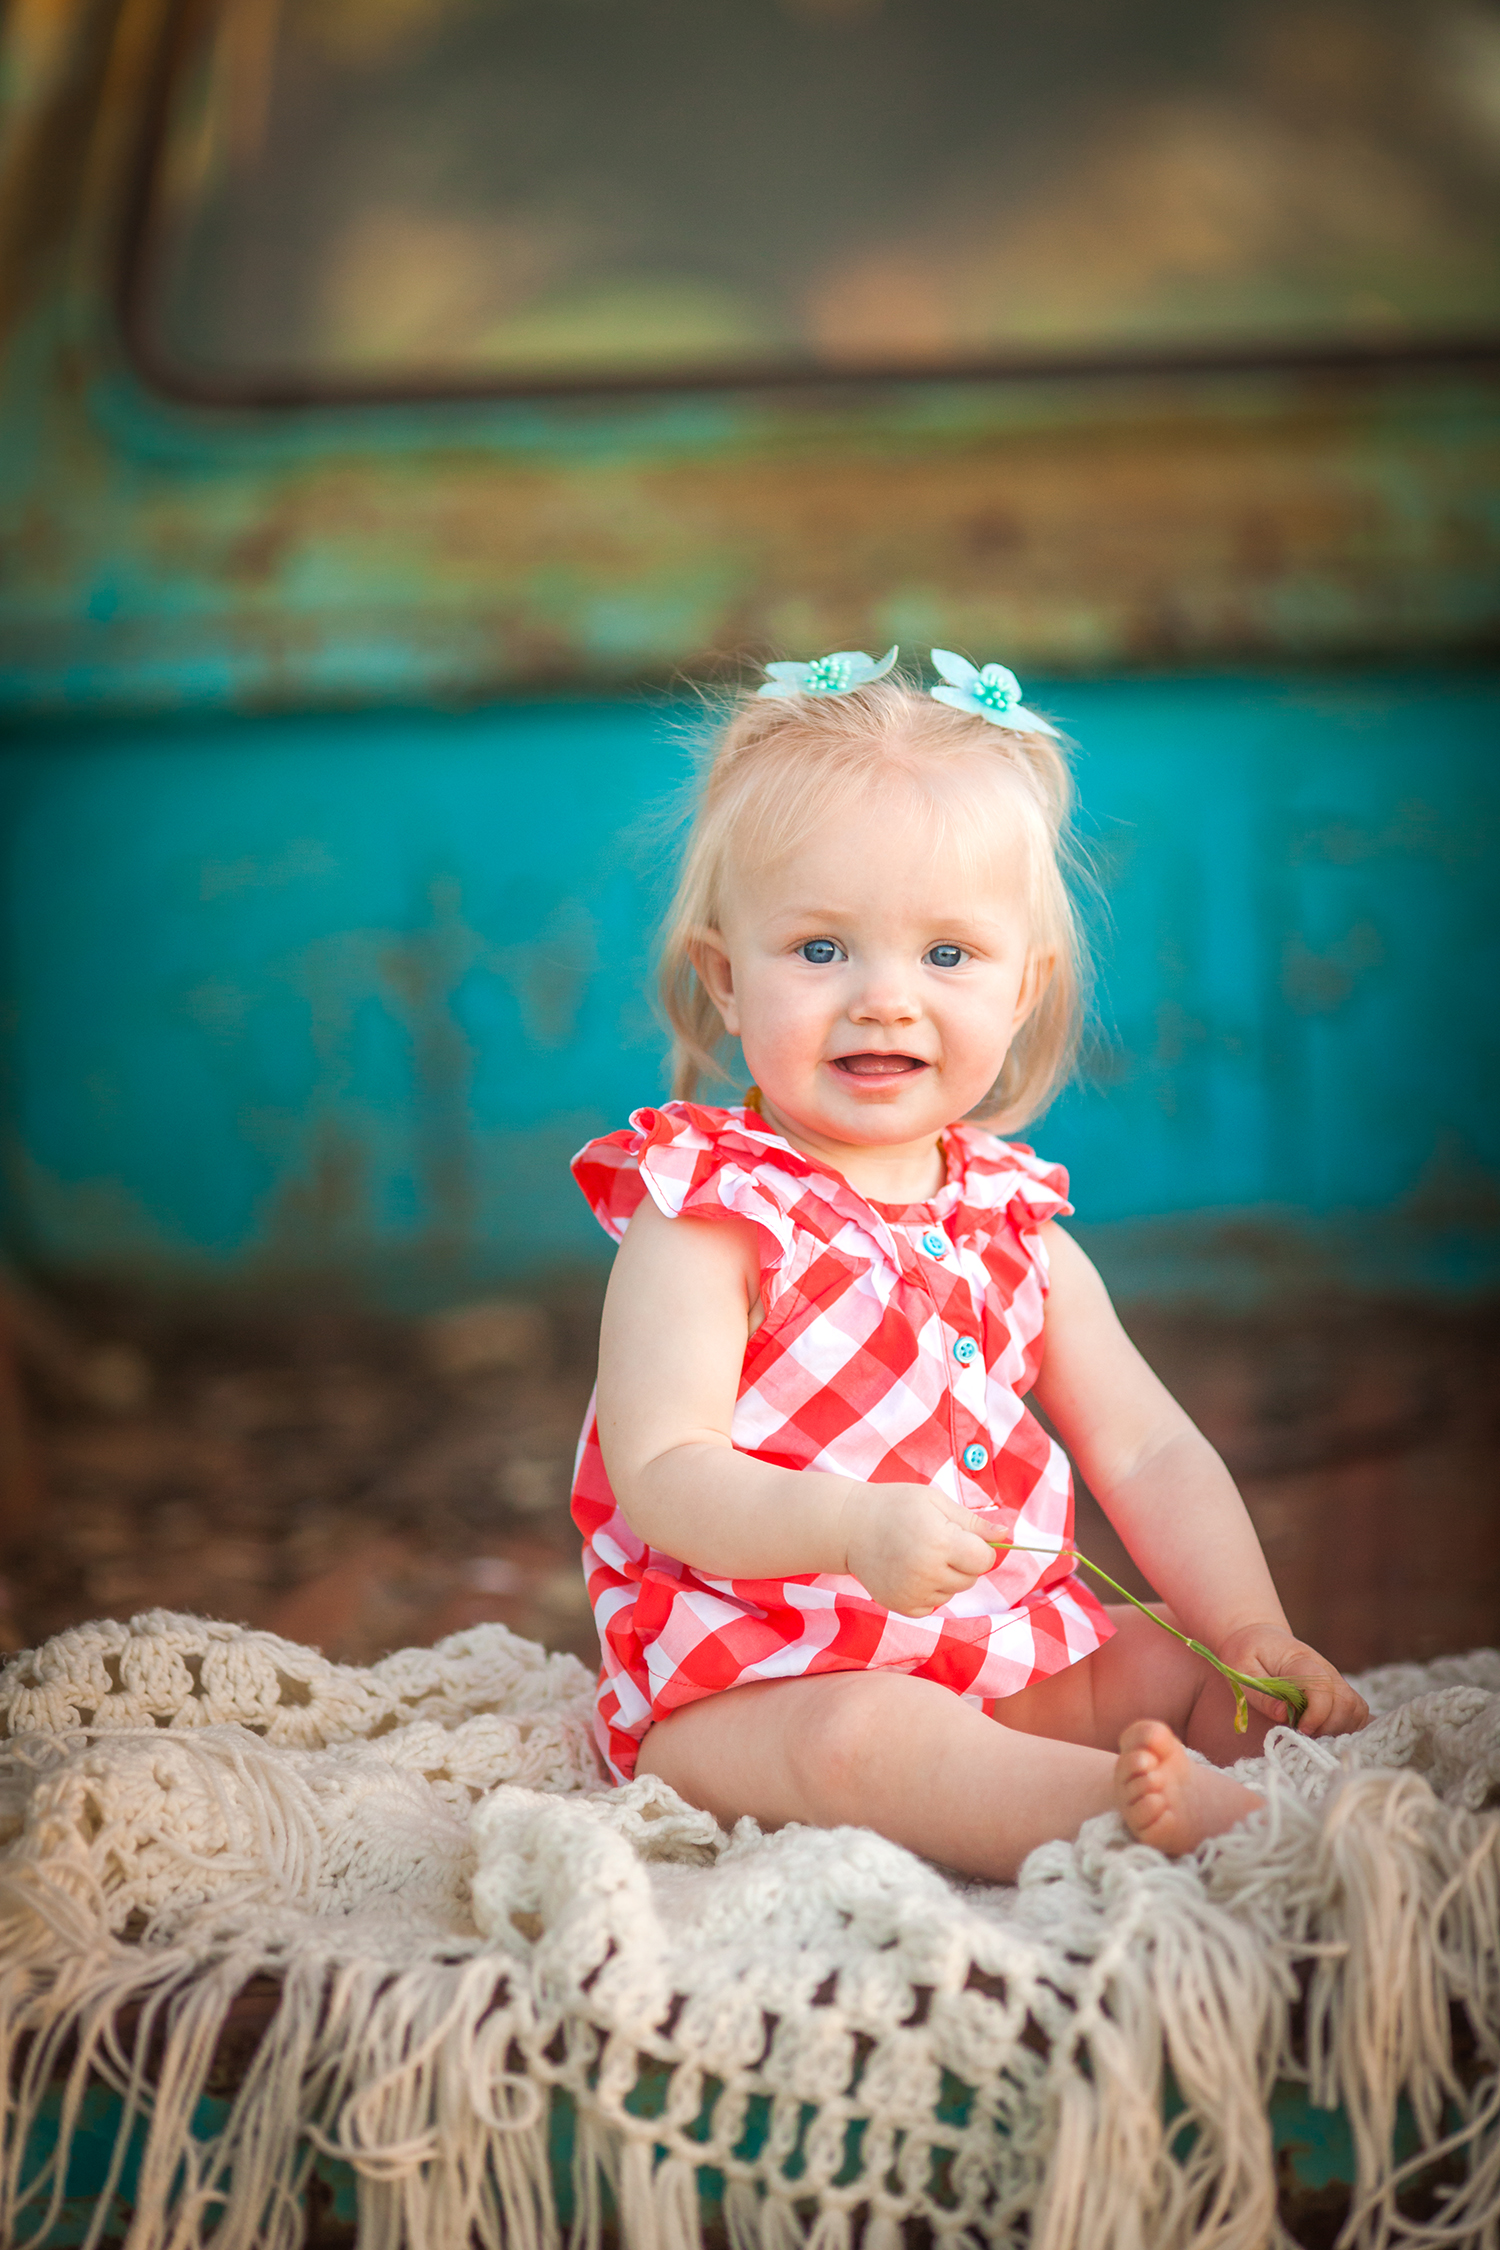 Dena_Rooney_baby photographer_0024.jpg